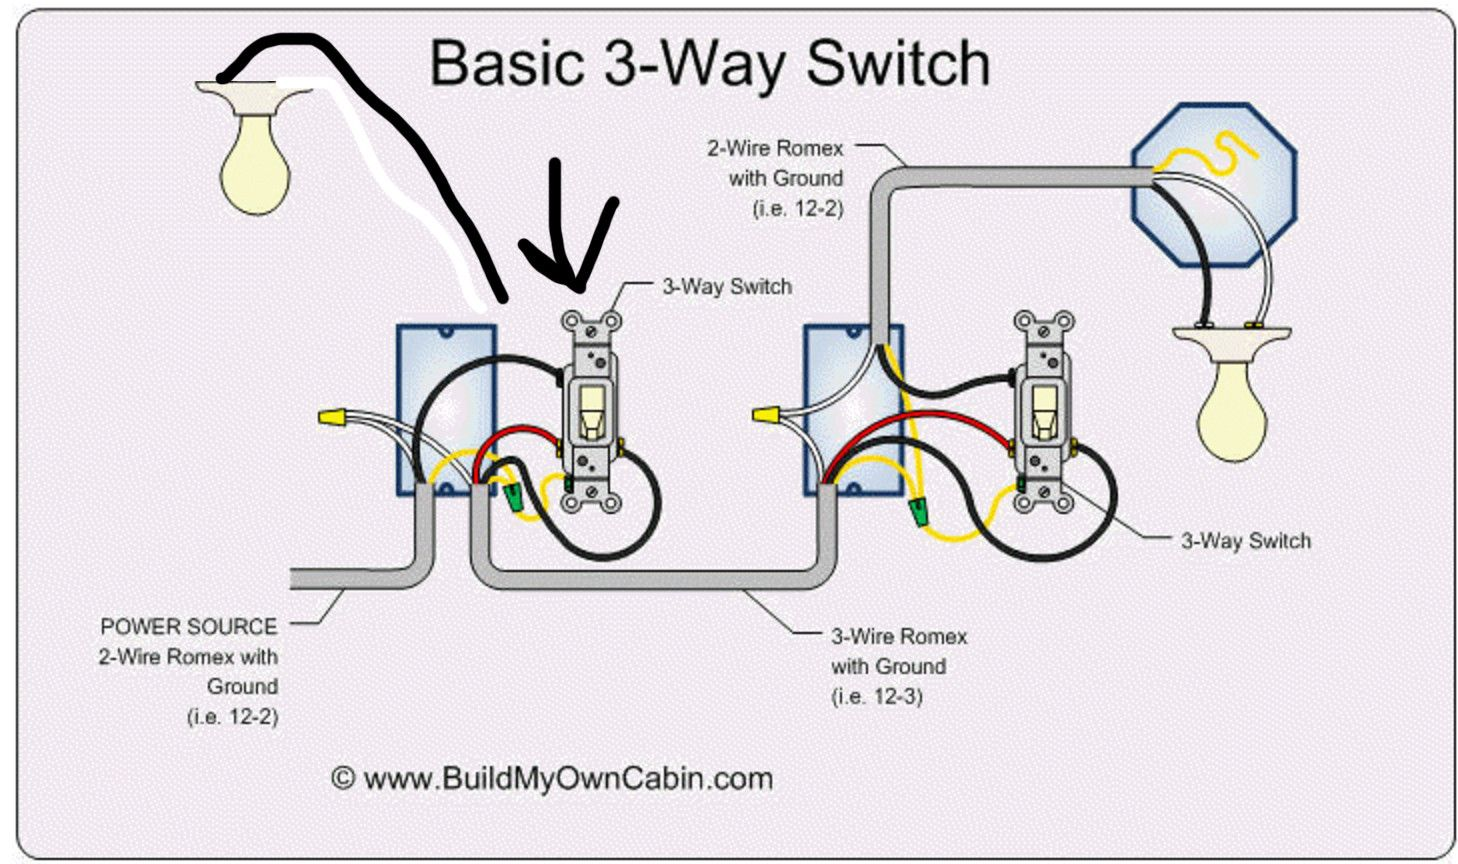 [DIAGRAM_1CA]  Wiring Diagram For 3 Way Switch With 4 Lights 1uizp | 3 way switch wiring, Light  switch wiring, Wire switch | Light Switch Touch Wiring Diagram For |  | Pinterest